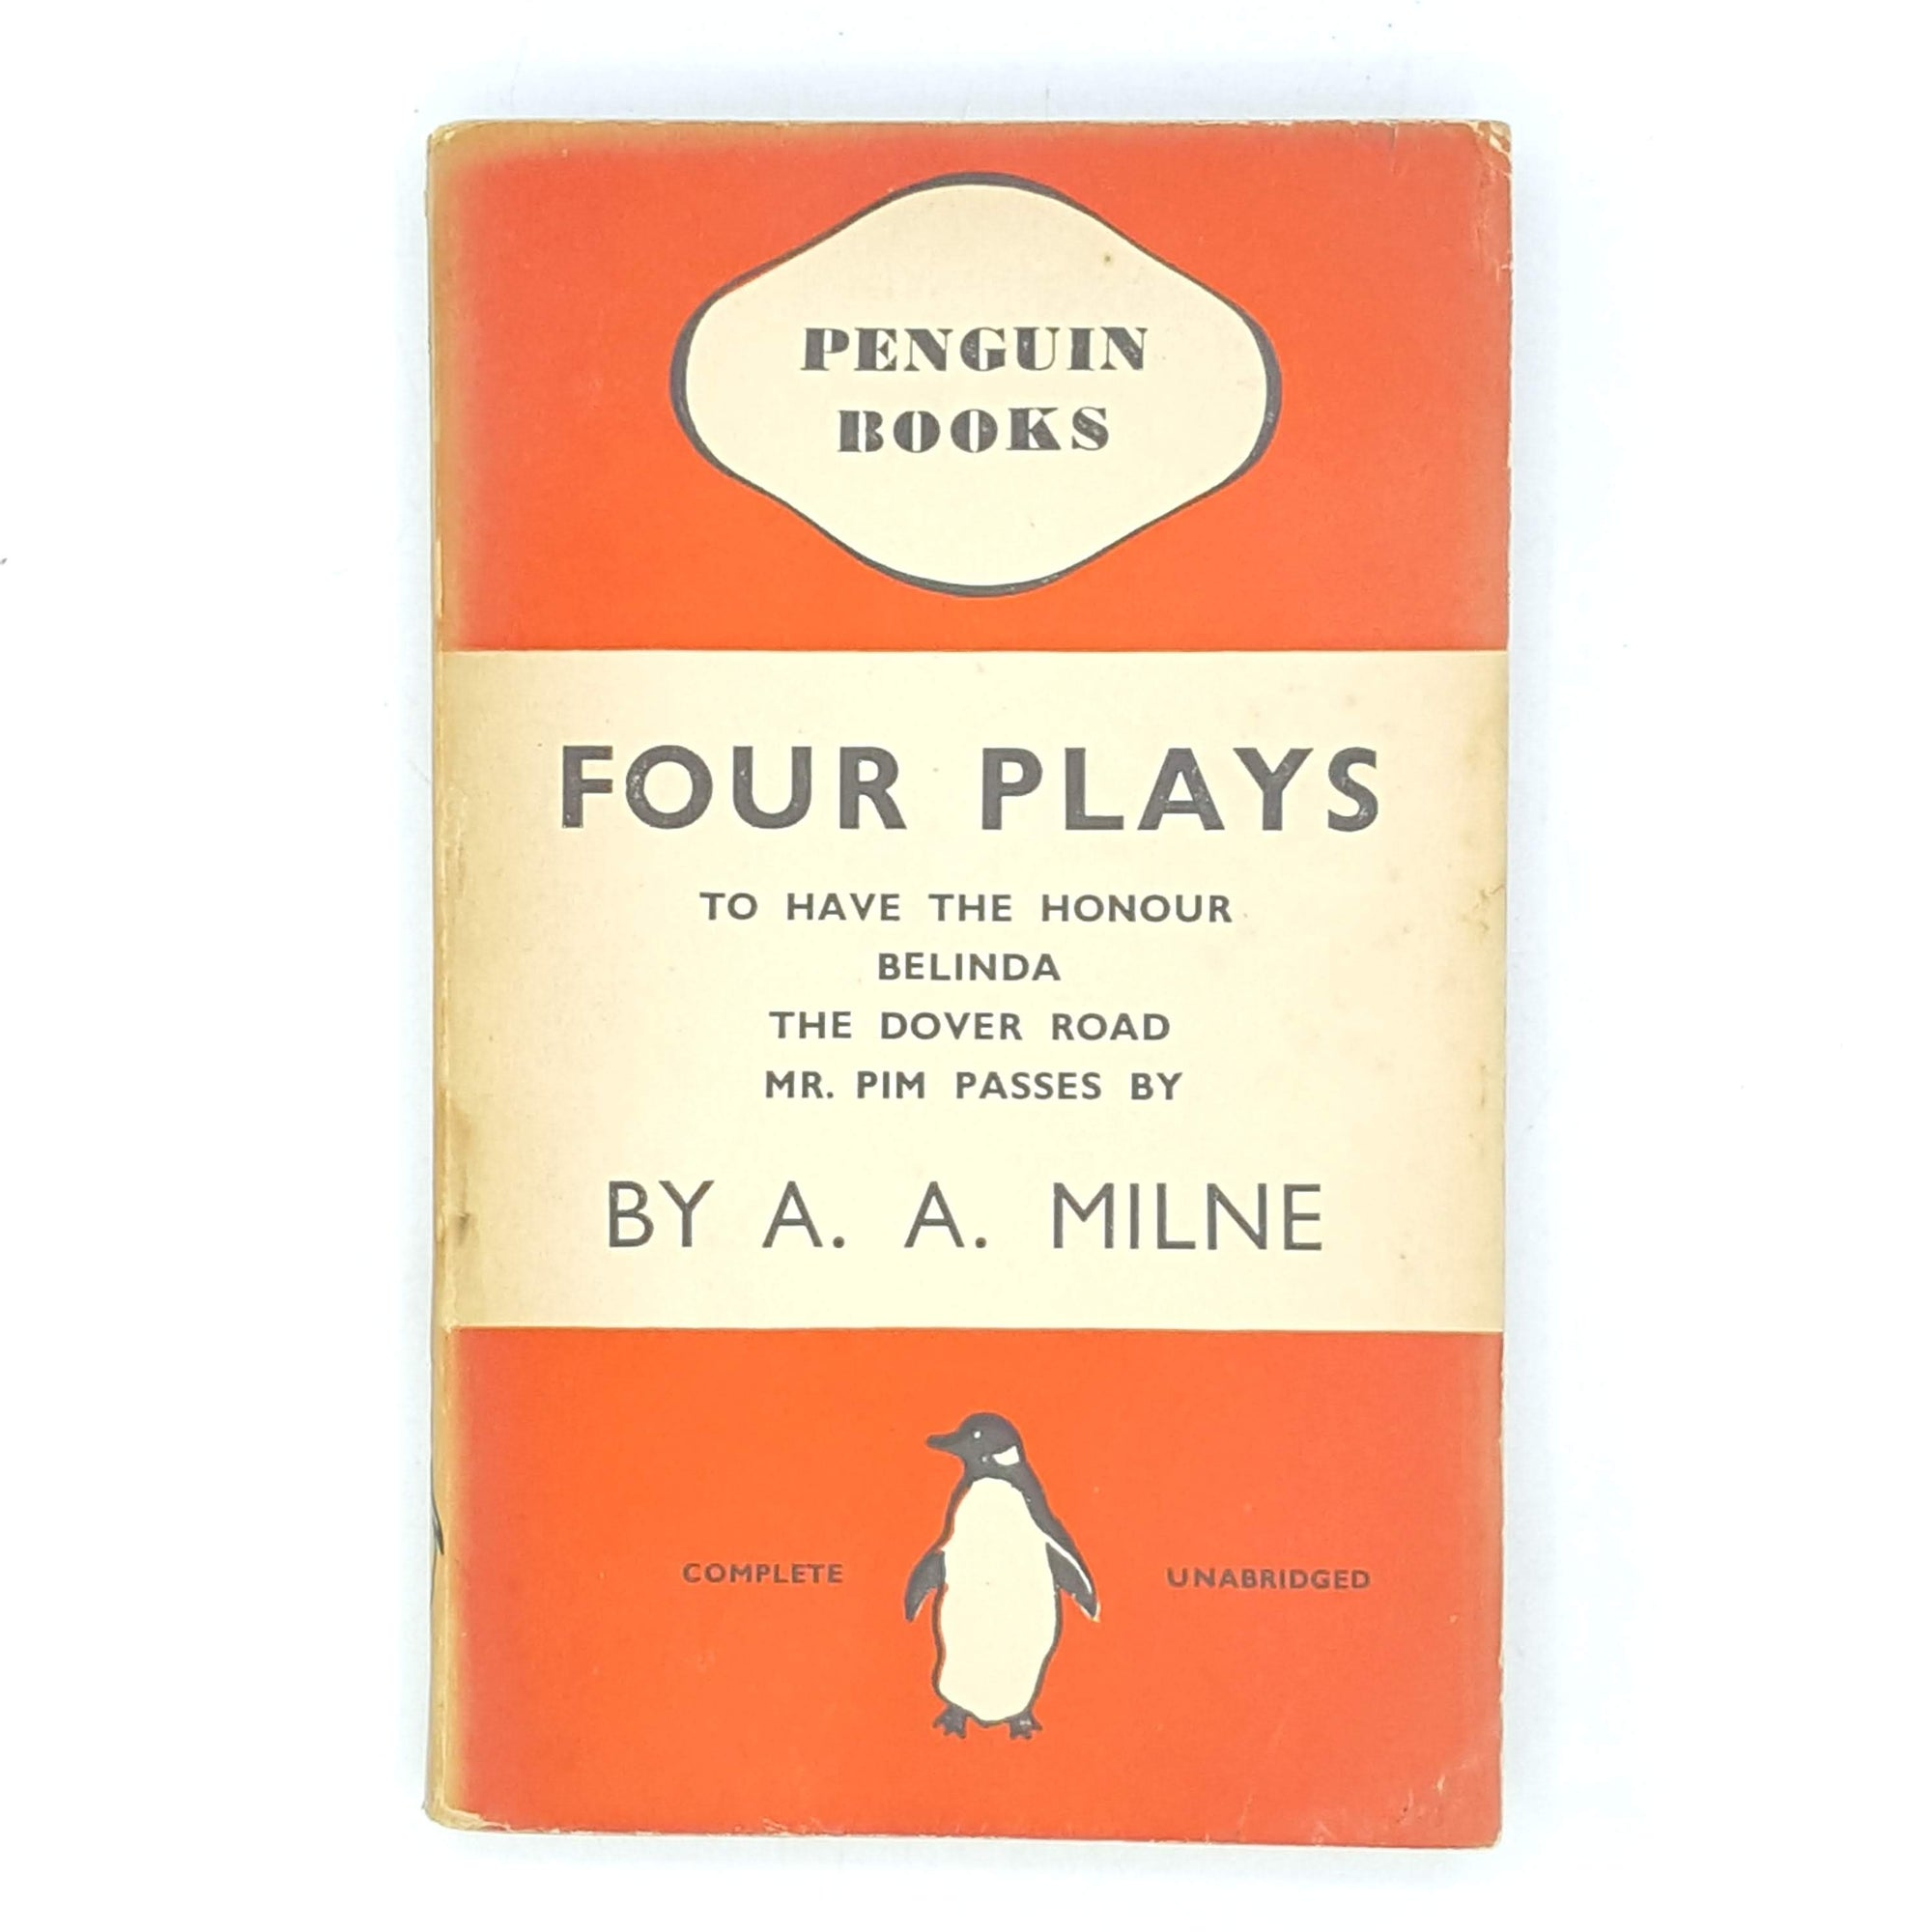 A. A. Milne's Four Plays First Edition Penguin